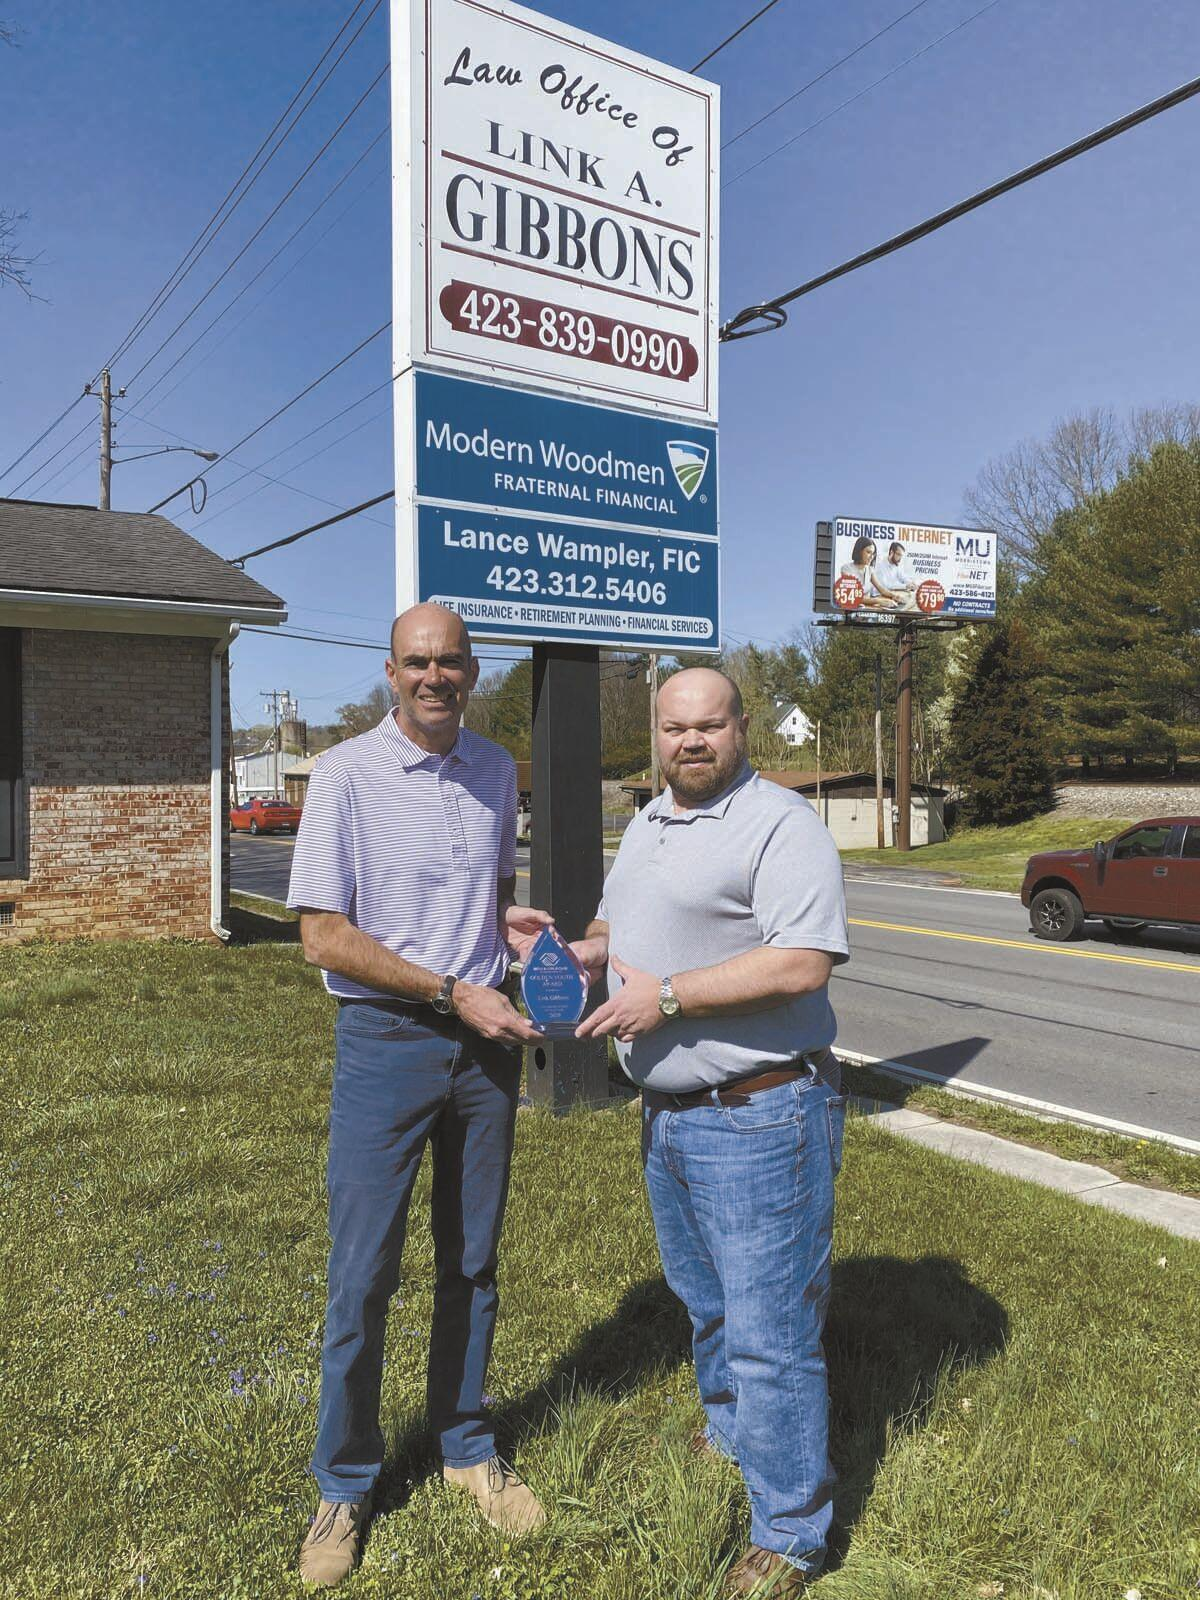 Boys & Girls Club of Morristown Honors Sempkowski and Gibbons